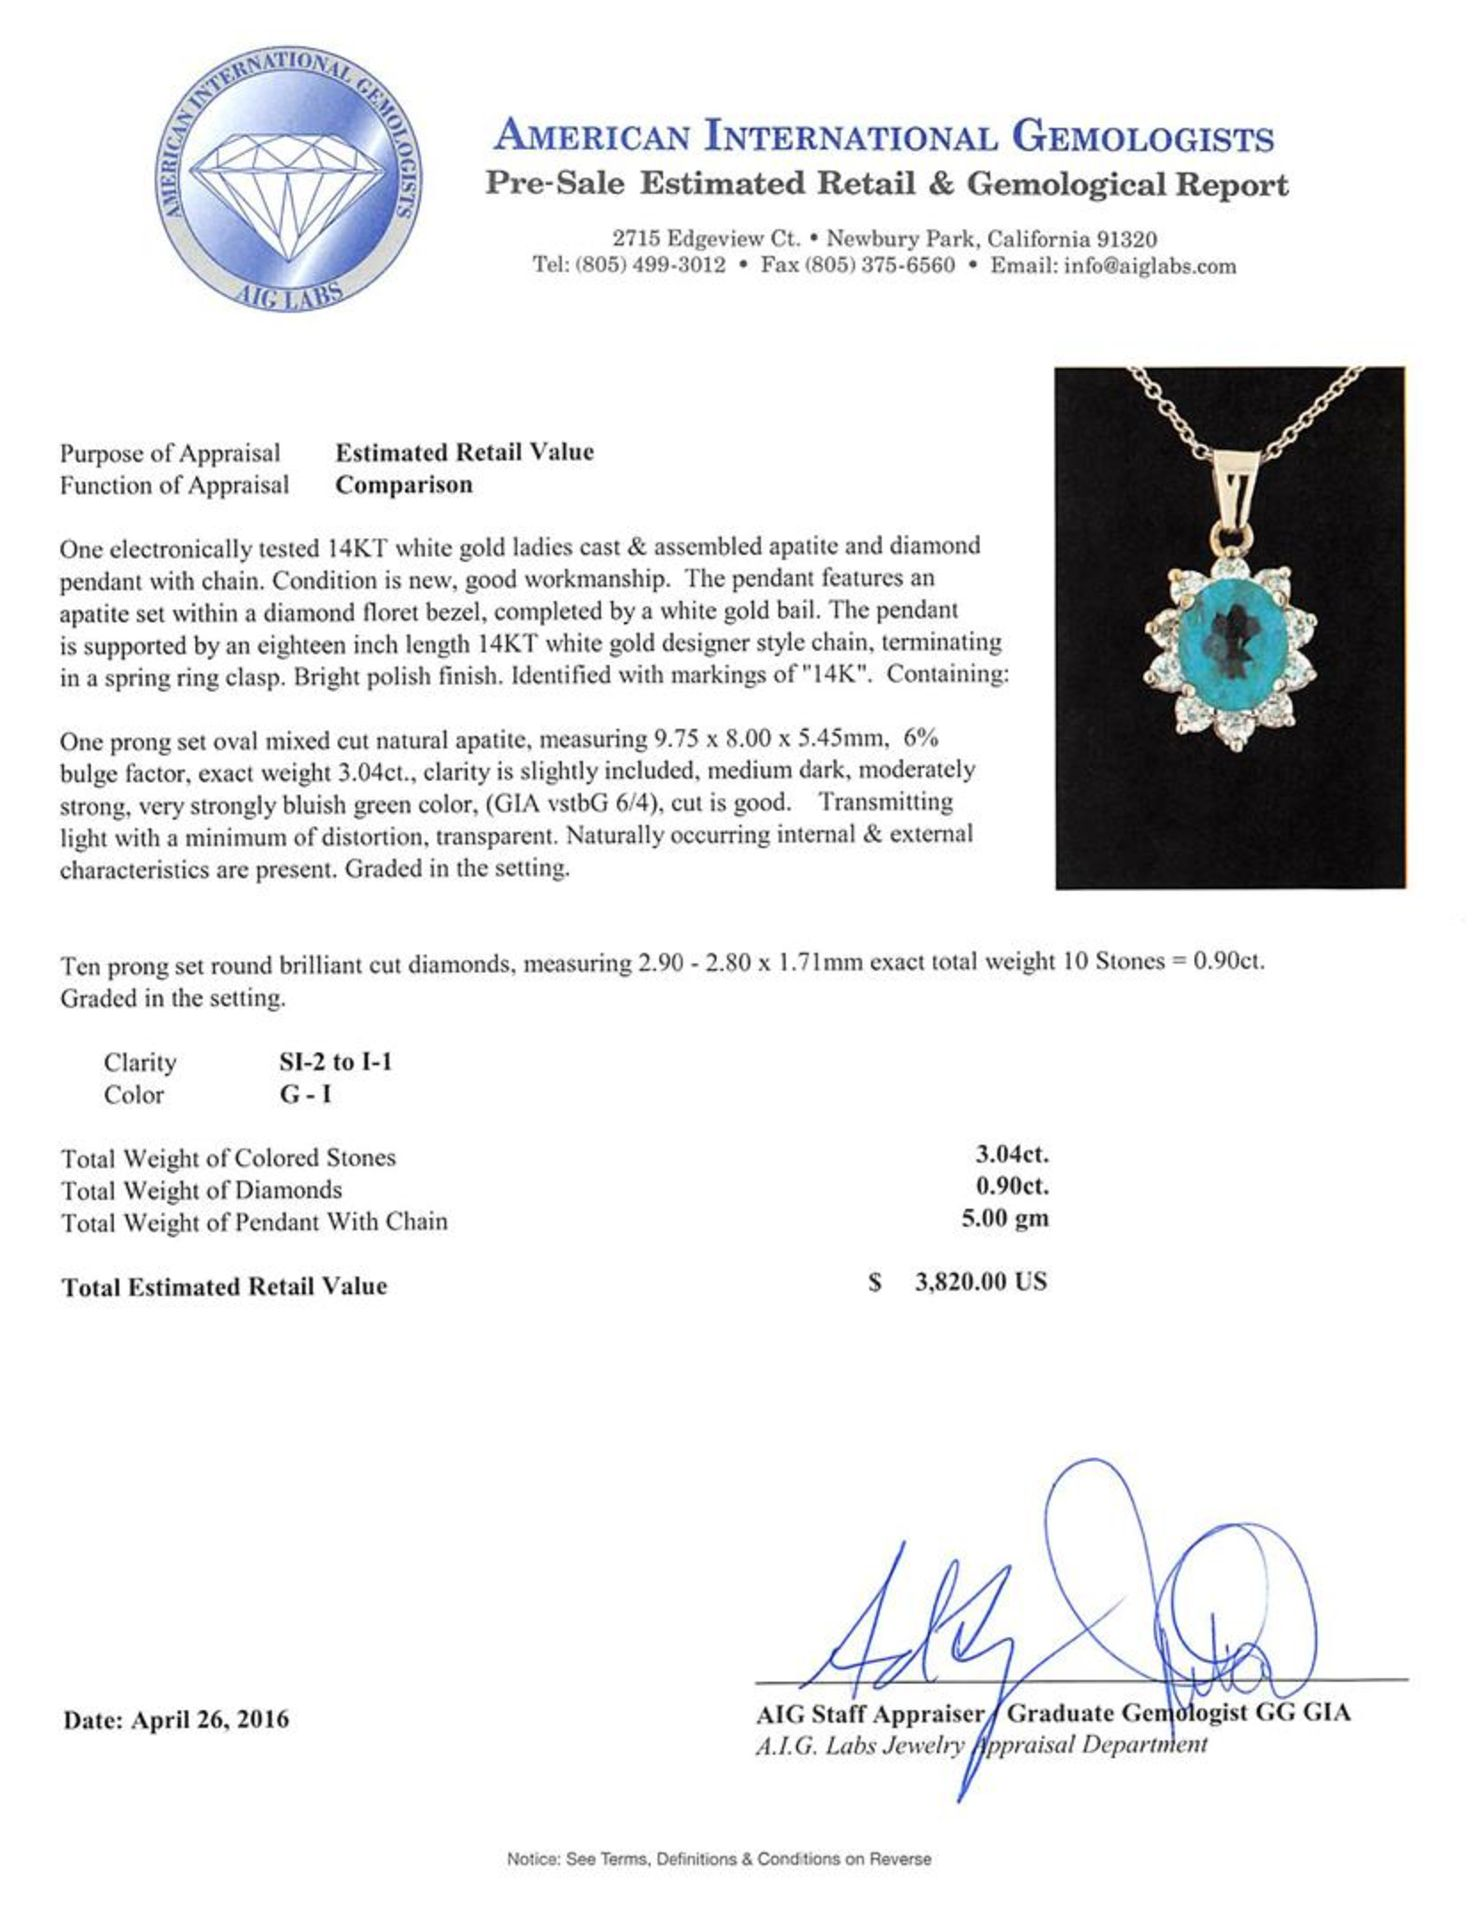 3.04 ctw Apatite and Diamond Pendant With Chain - 14KT White Gold - Image 3 of 3